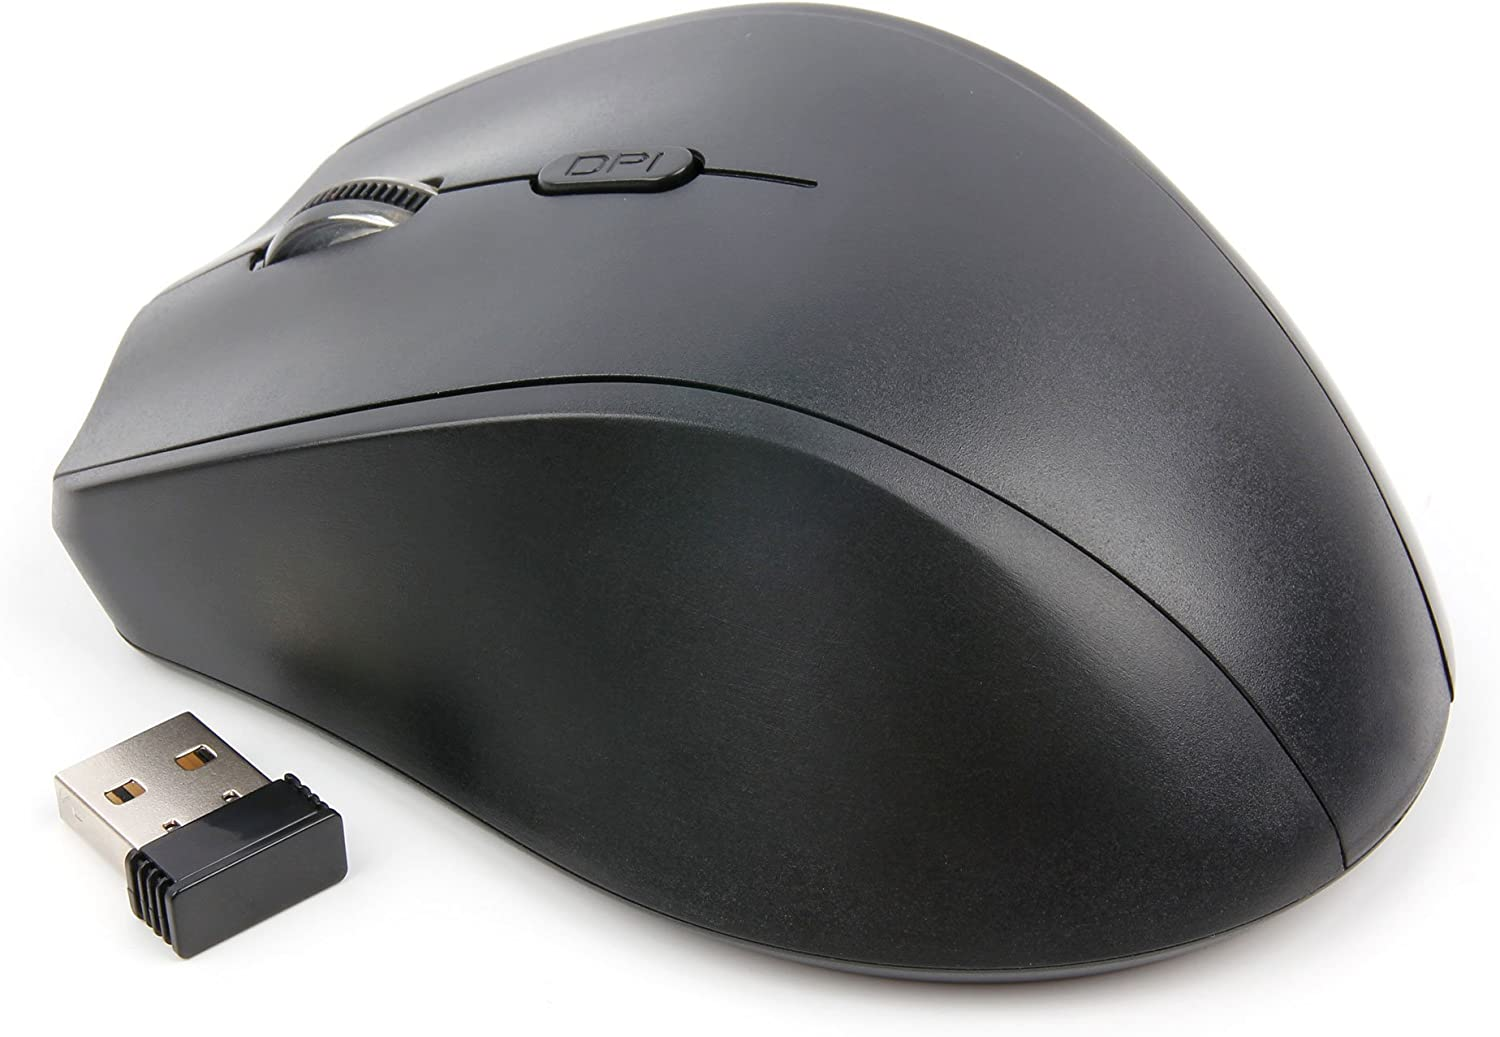 DURAGADGET USB Left Handed Wireless Optical Mouse with Browser Buttons Compatible with The Acer Aspire E5-575G-73CN